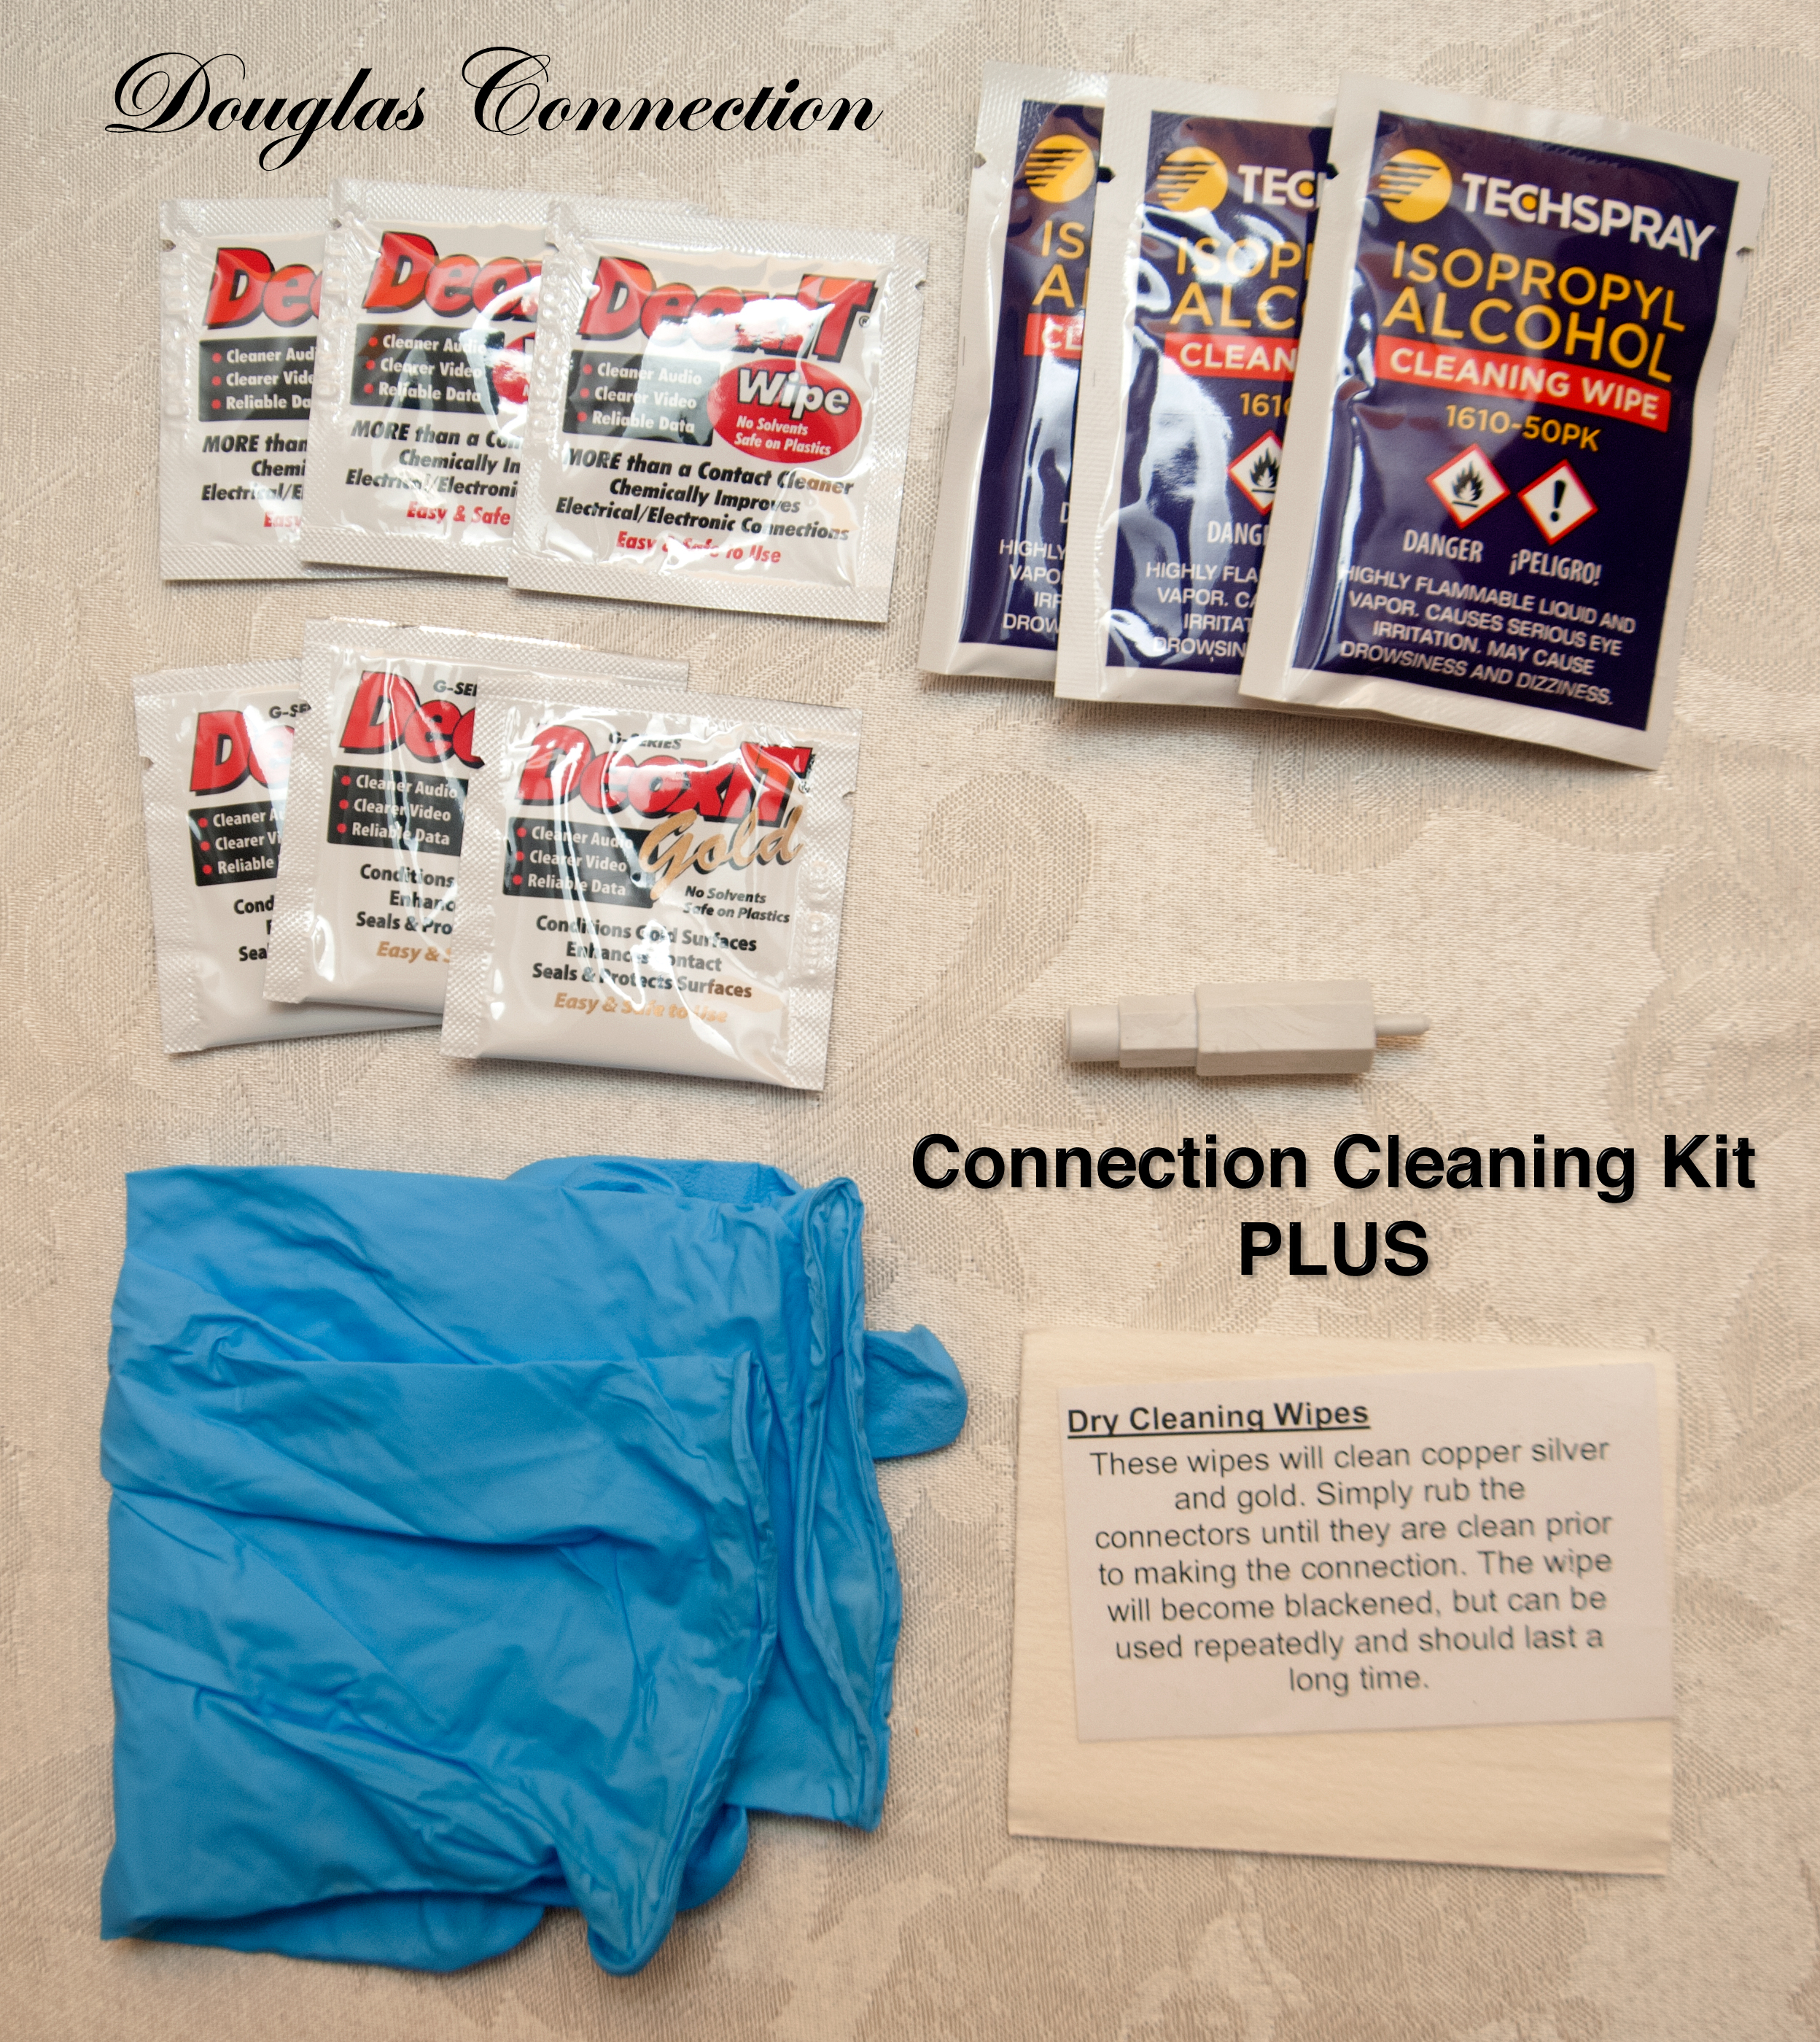 Douglas Connection Cleaning Kit Plus